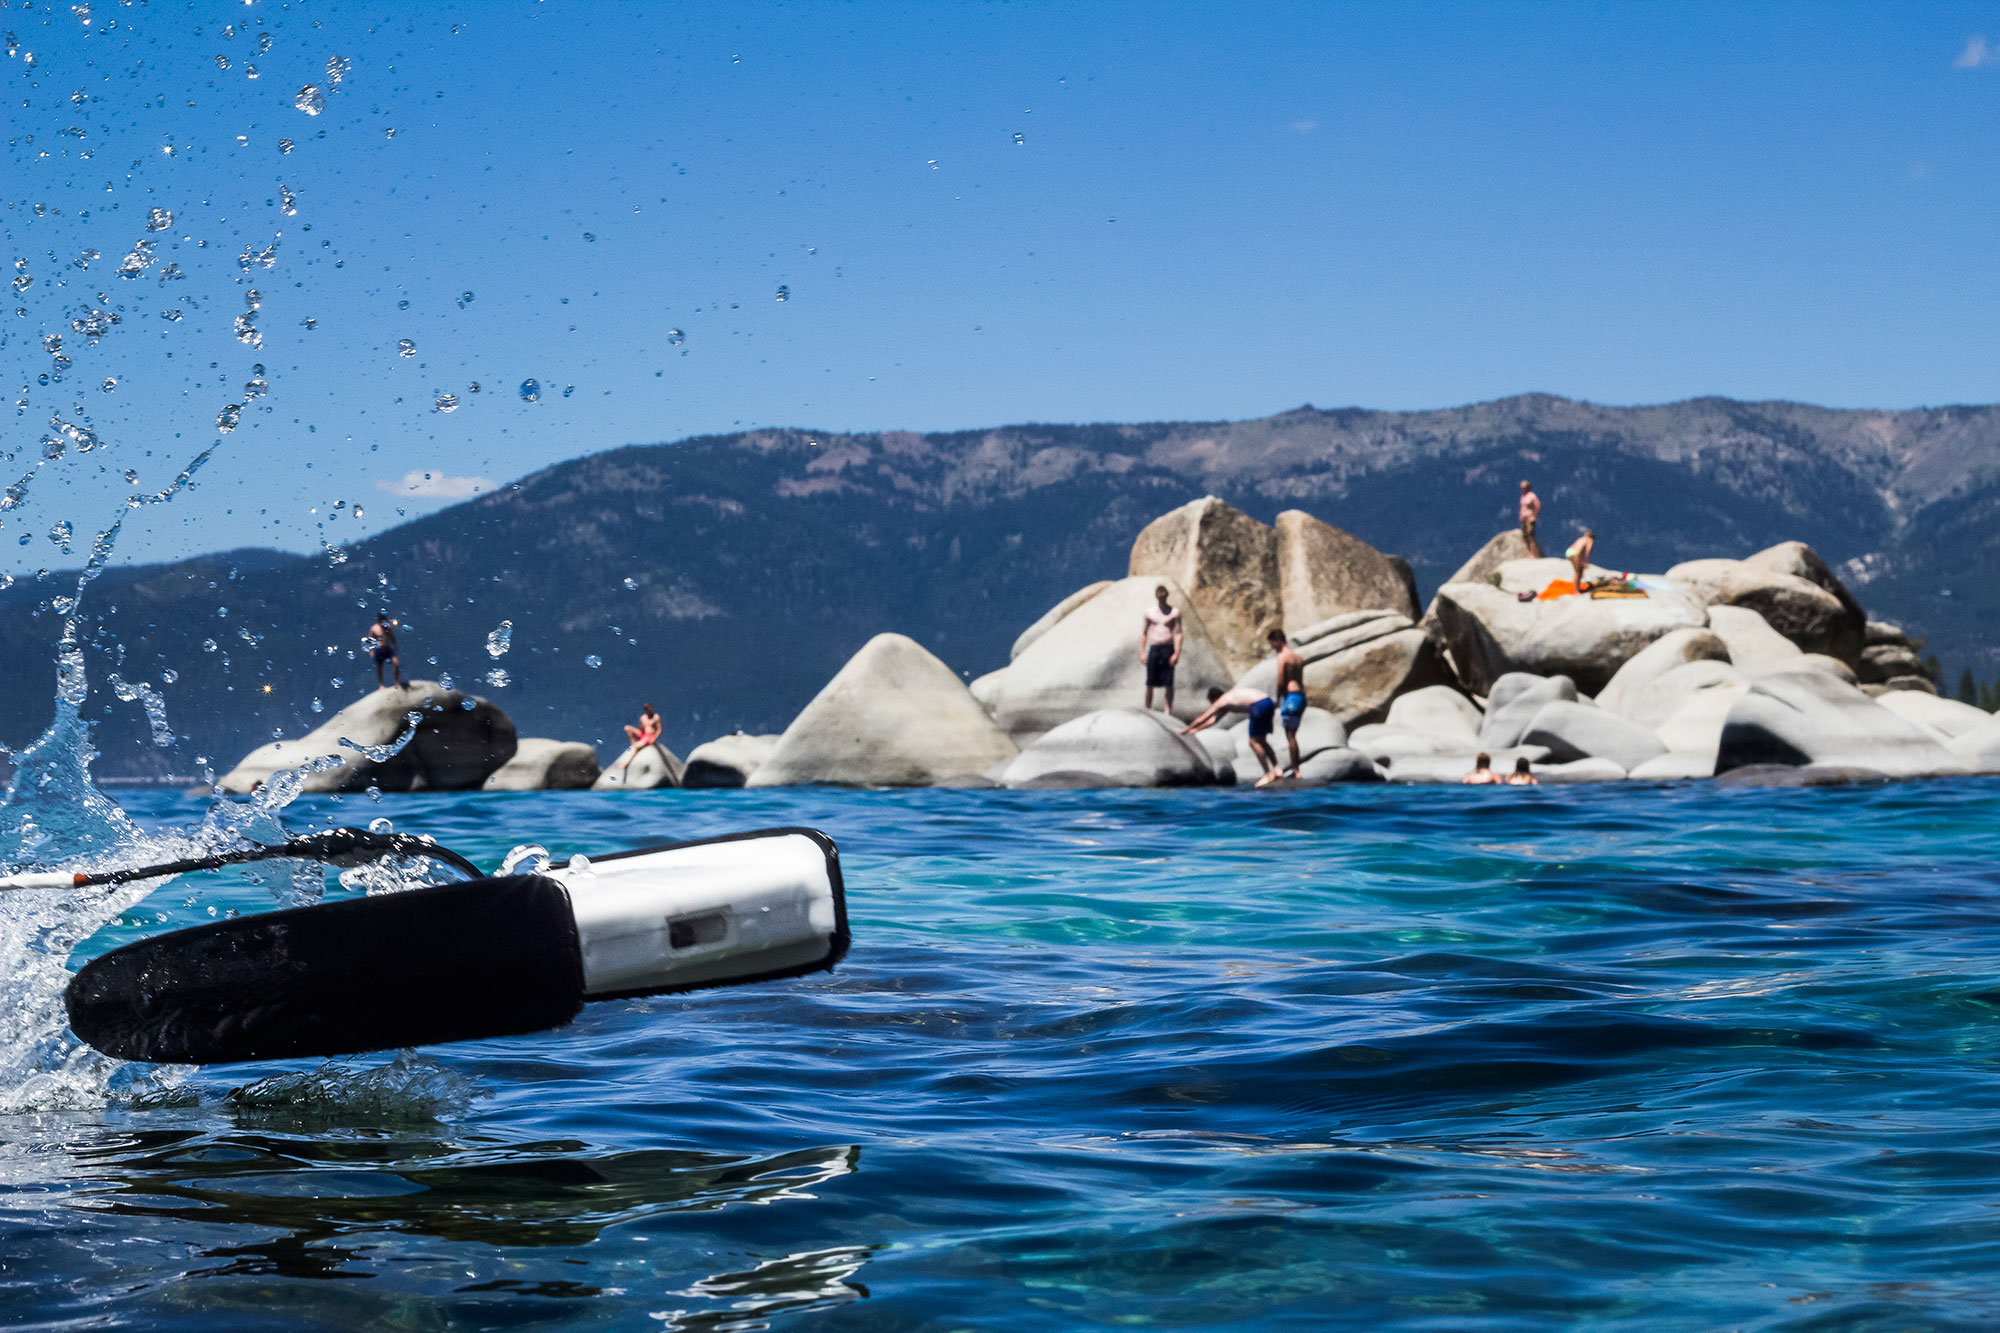 David_Lang_OpenROV_Trident_drone_skims_water_surface